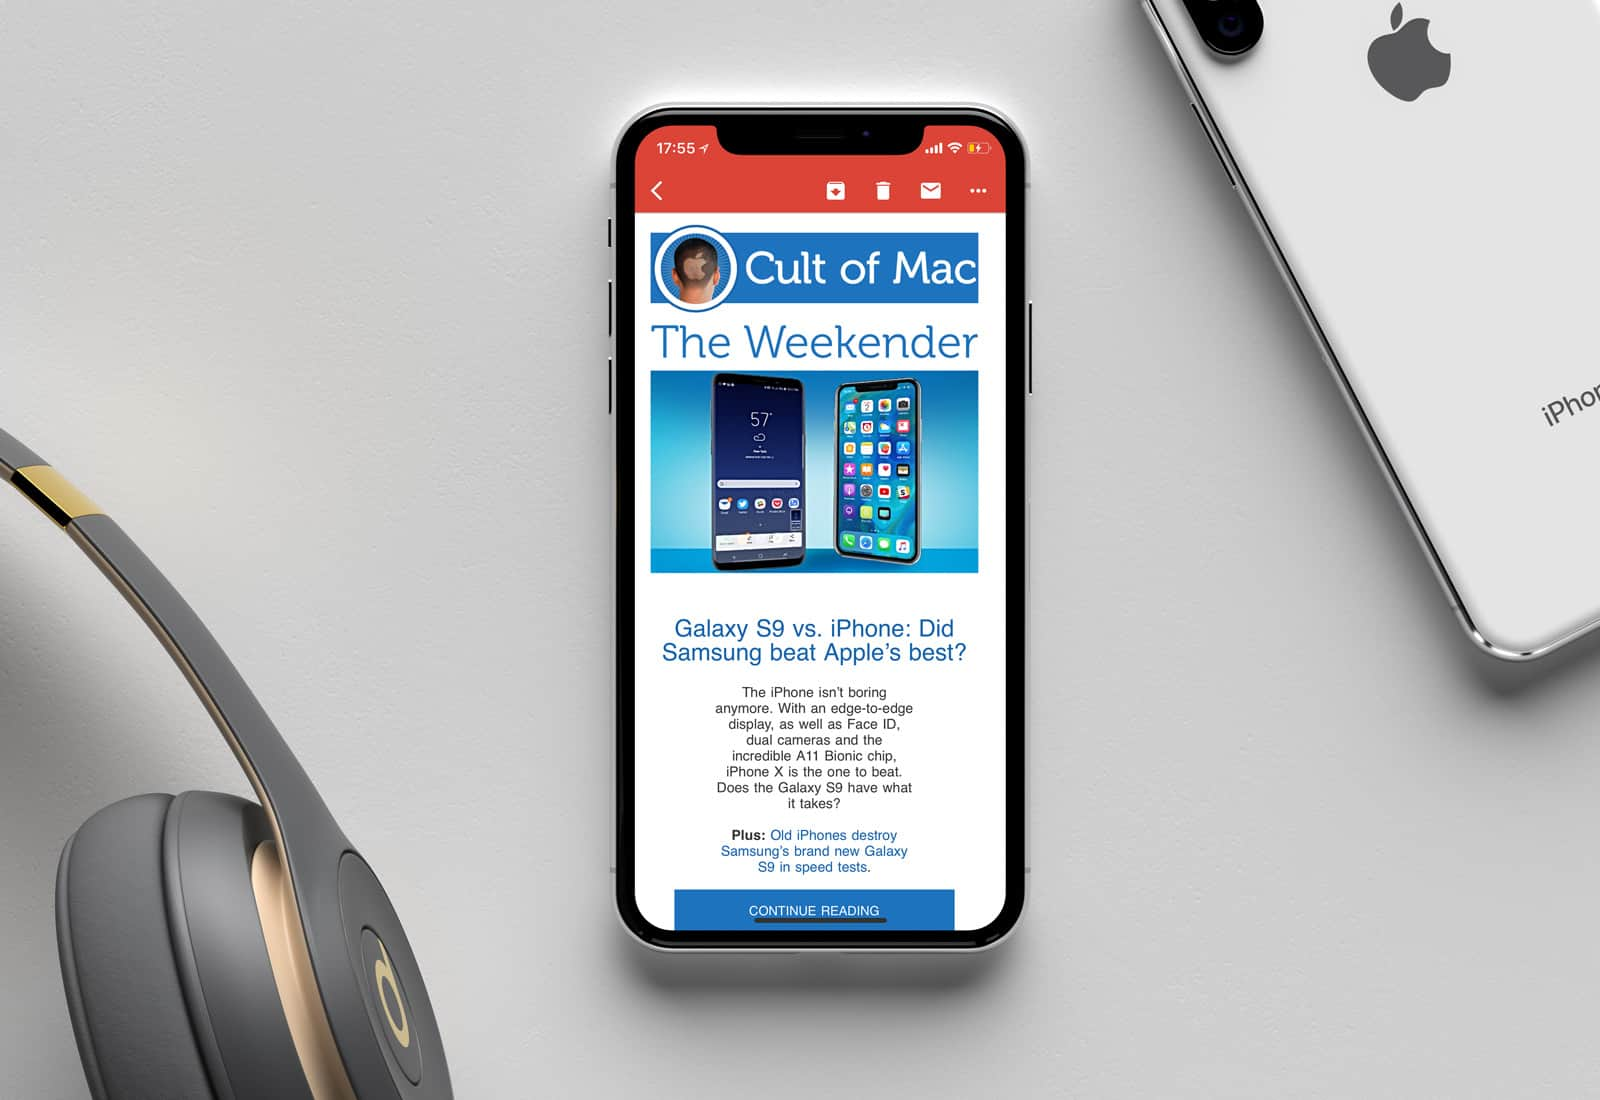 Sign up for Cult of Mac weekly newsletter The Weekender for Apple news, reviews and how-tos.